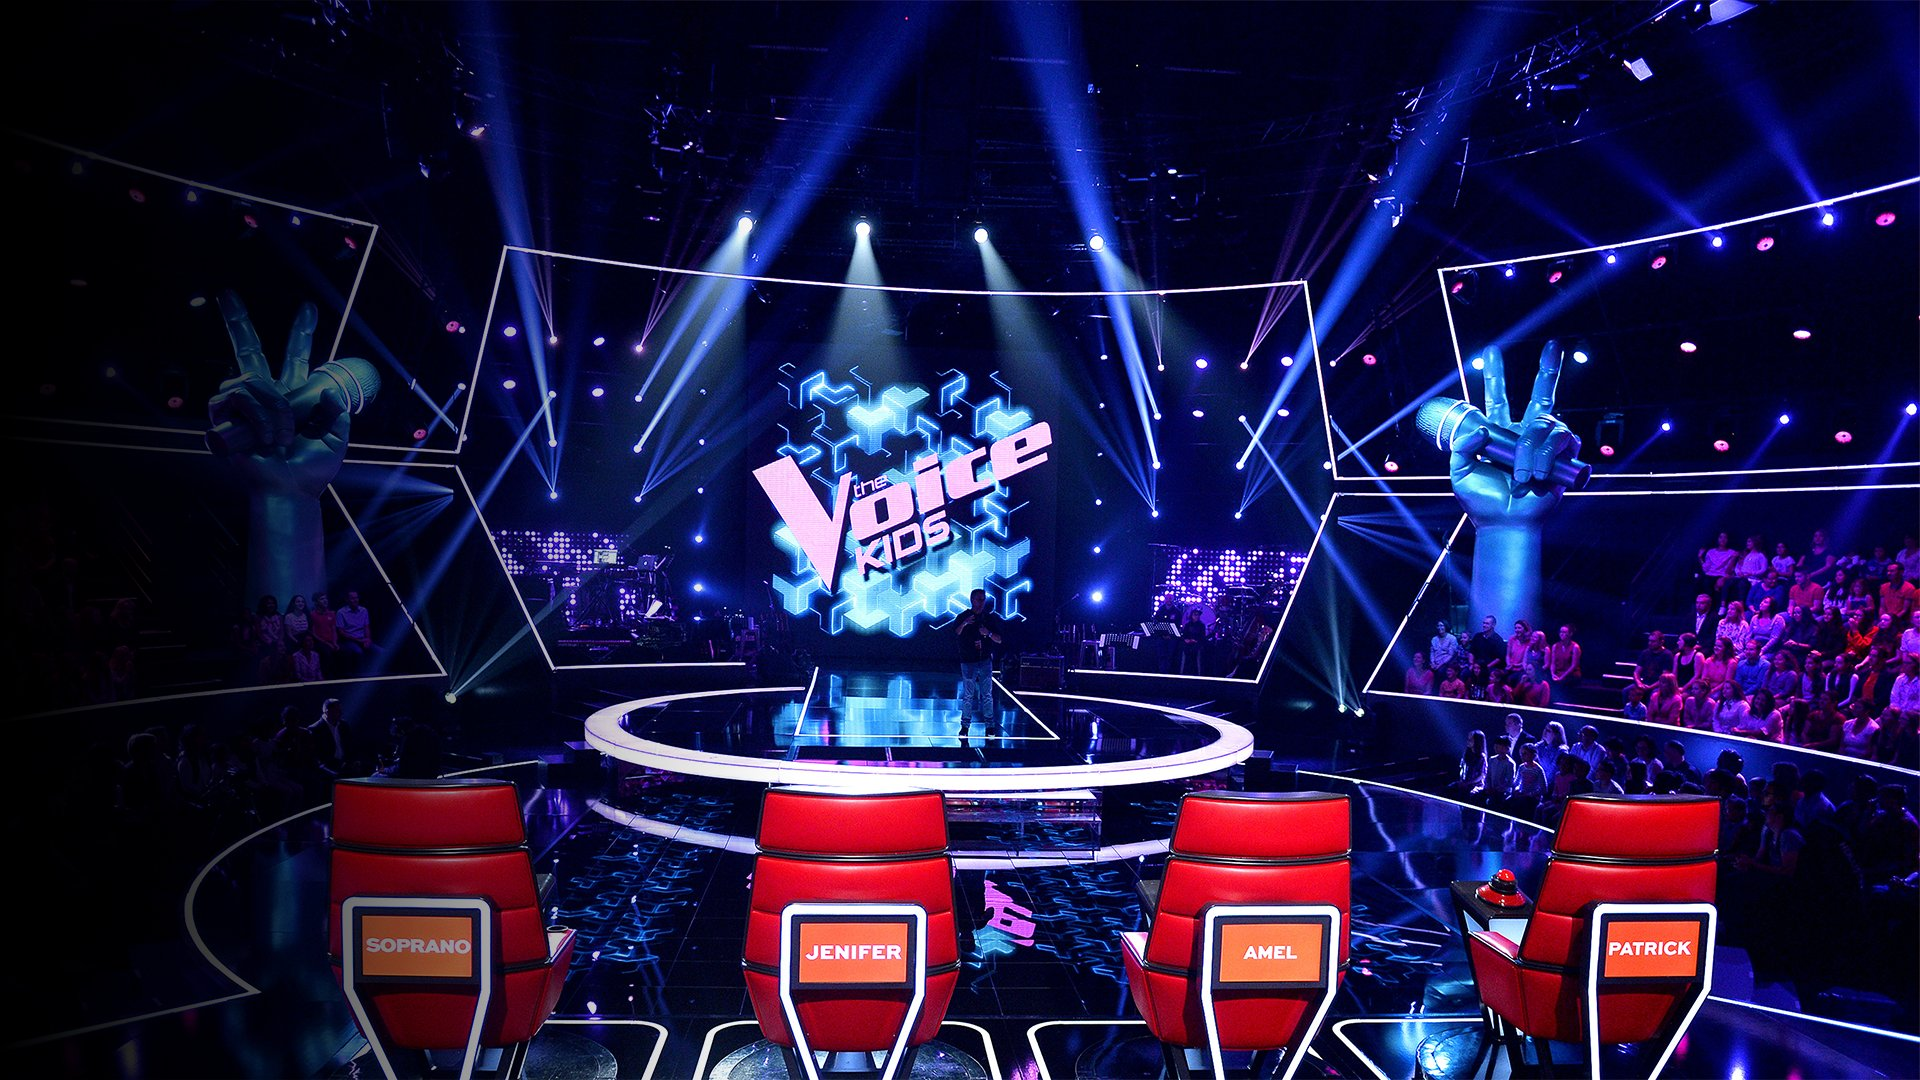 fond The Voice Box Marseille: Le casting de John Ogah – Hallelujah  – Jeff Buckley